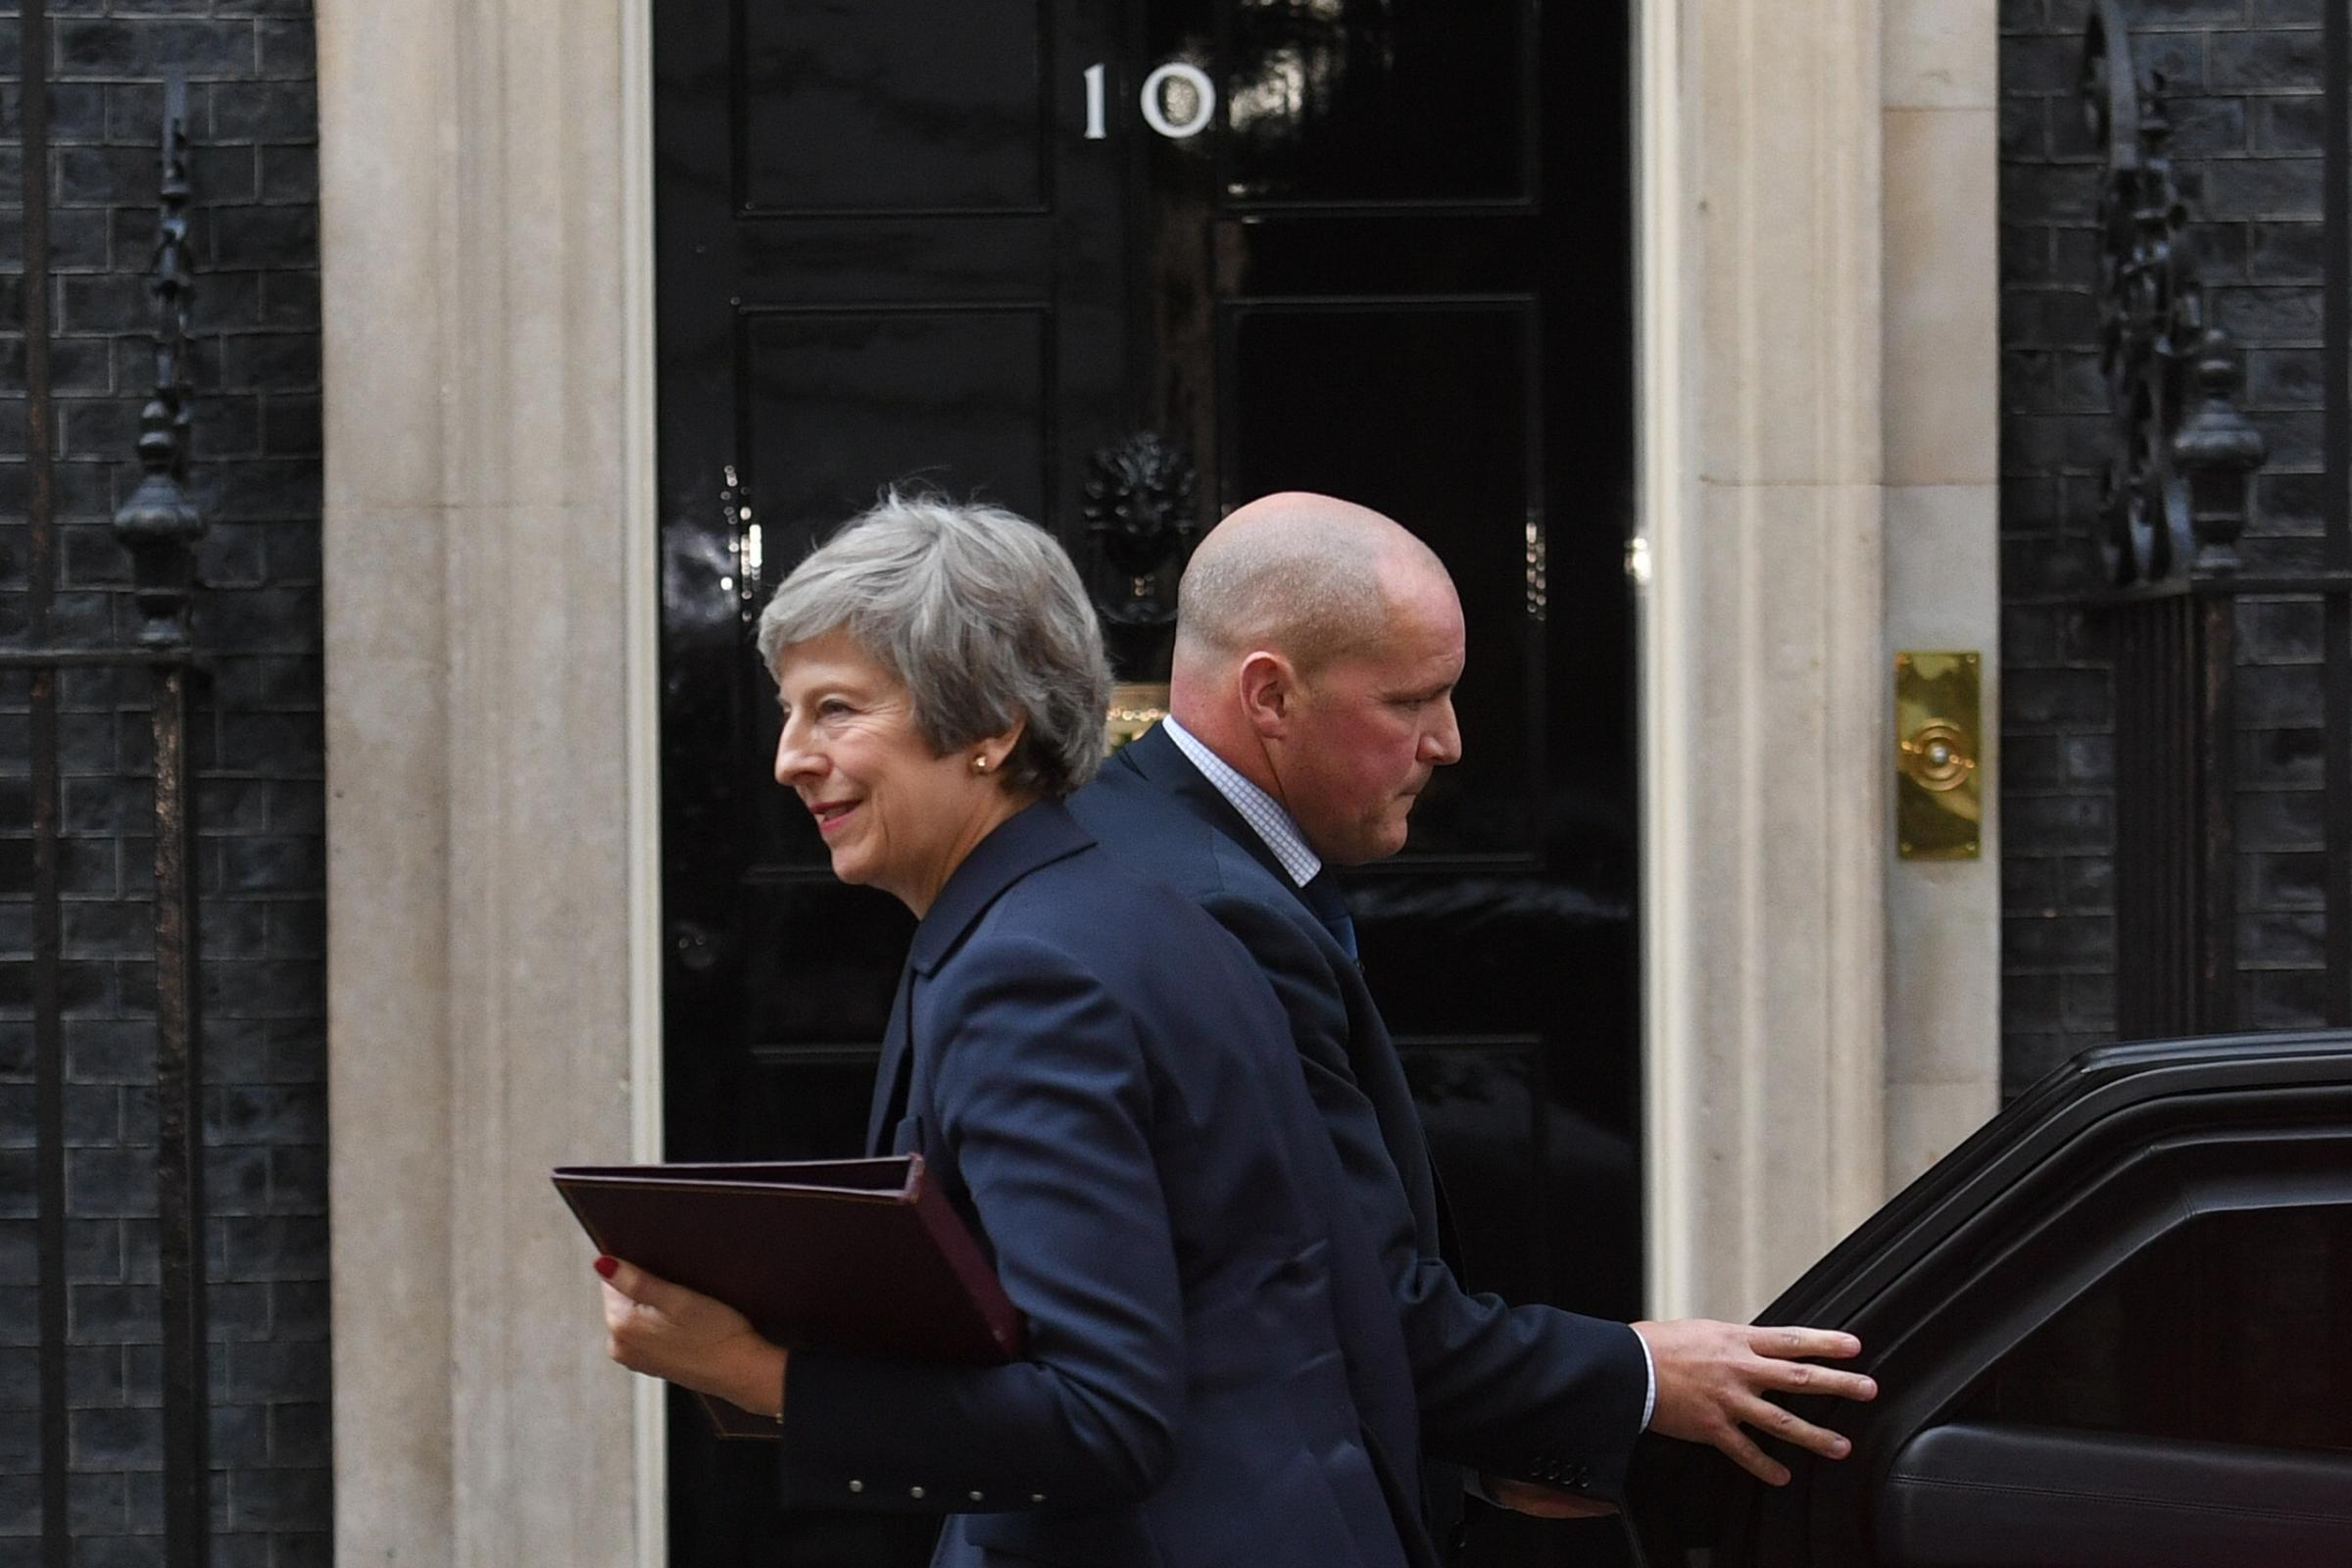 Tory unease surfaces as Cabinet meets to discuss draft Brexit deal